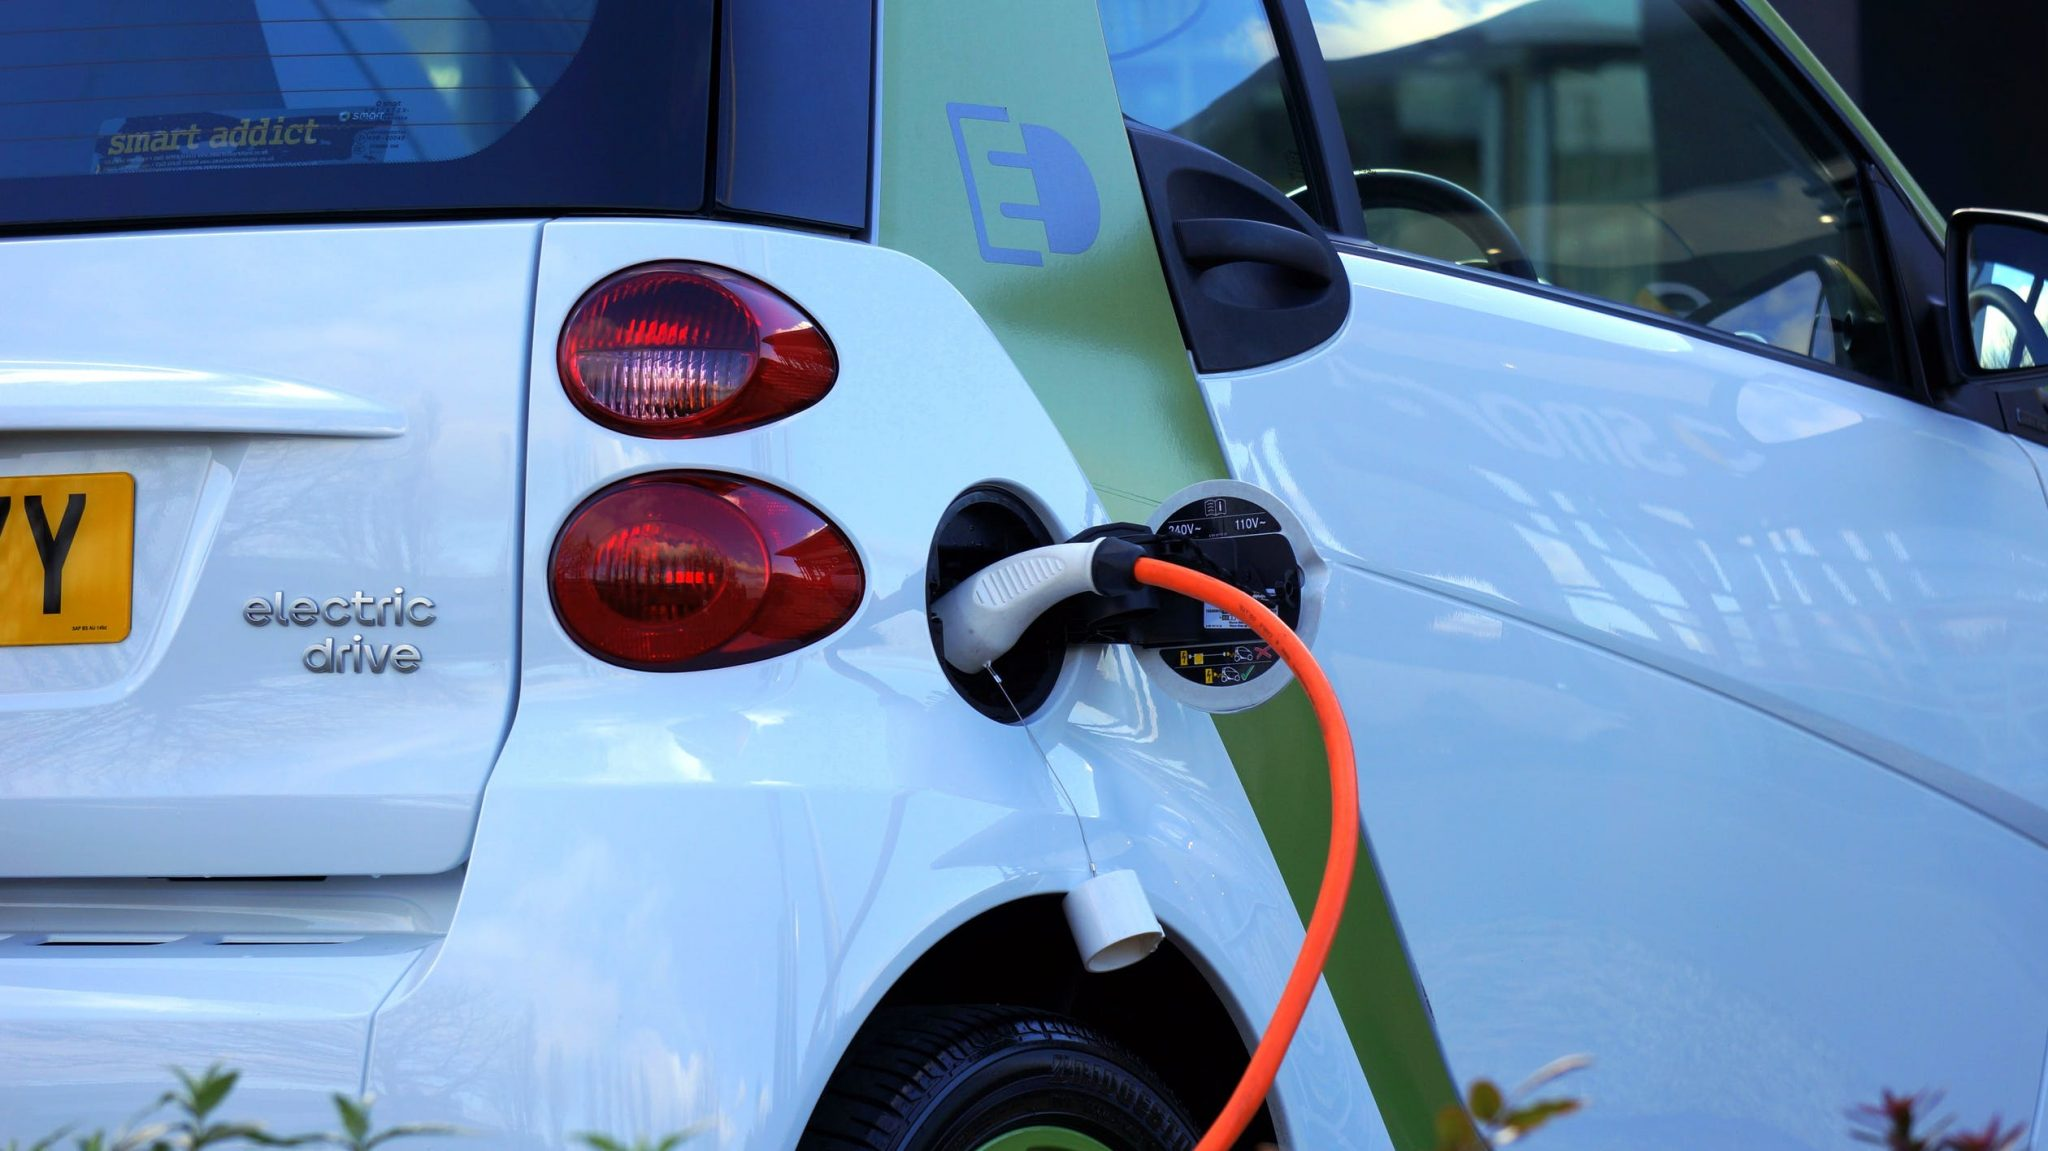 5 Great Electric Cars to Consider in 2018